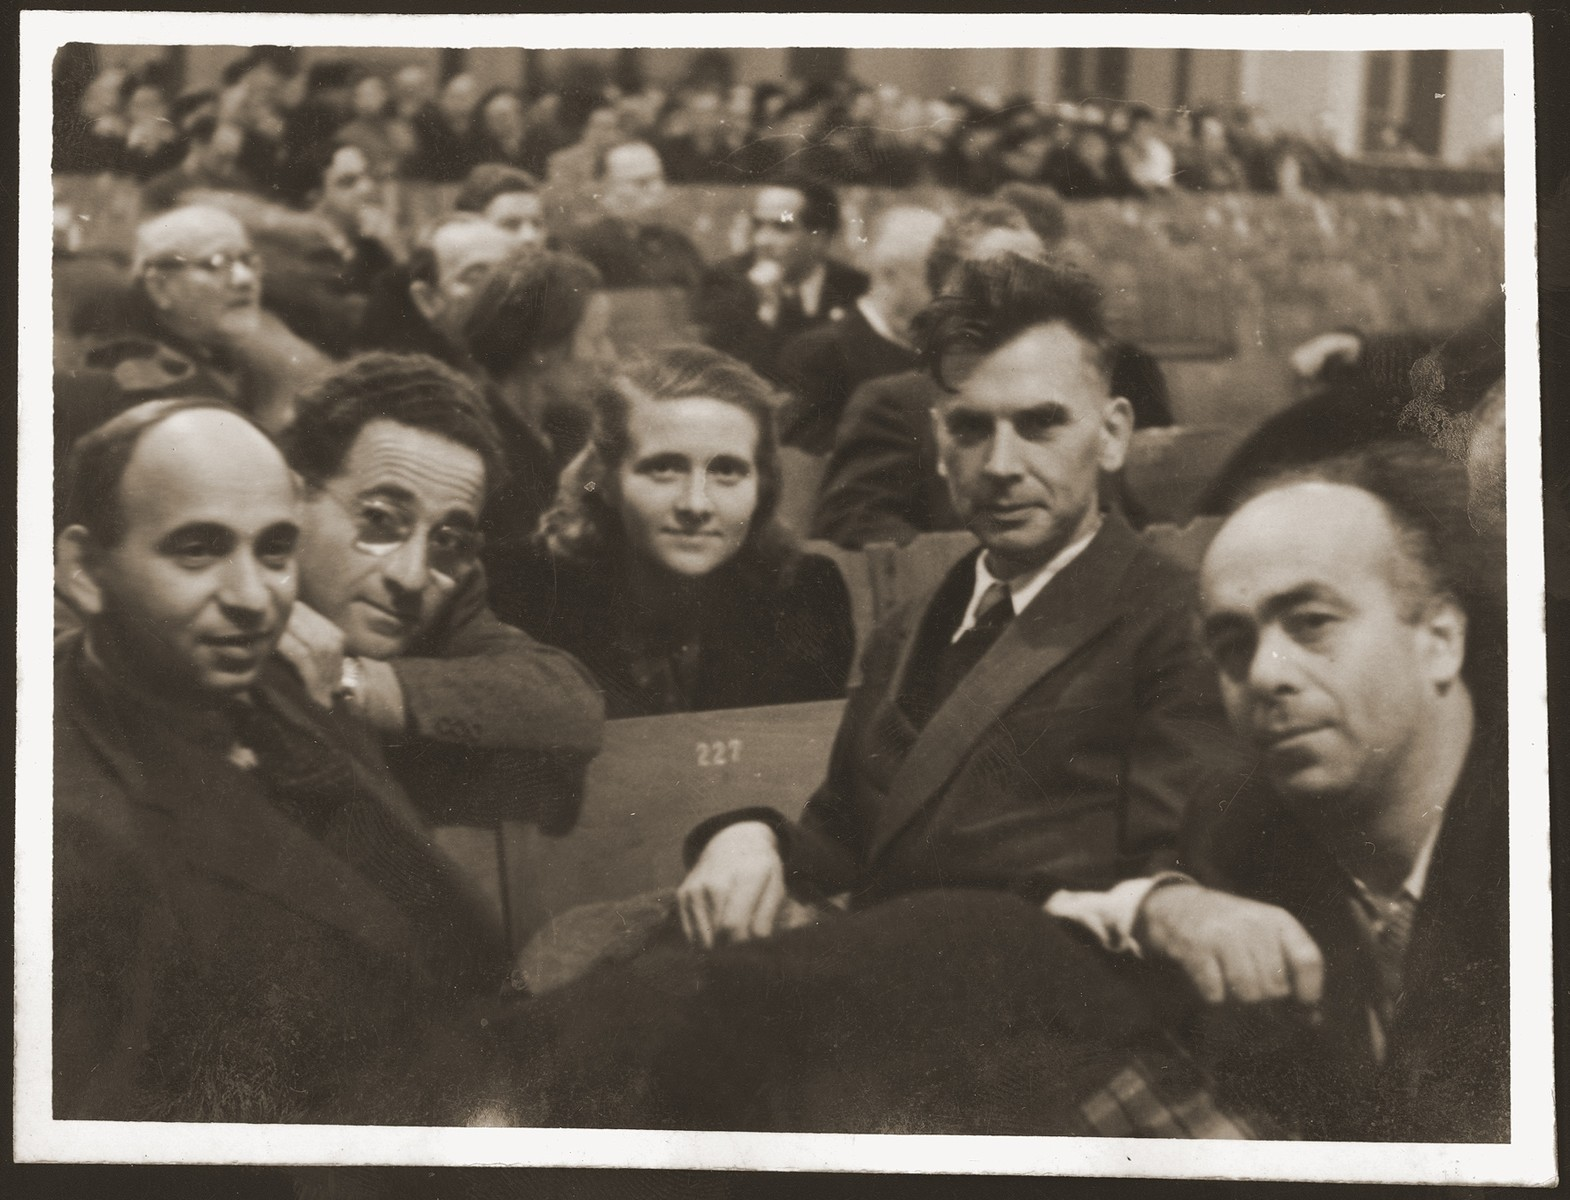 Delegates to the twenty-second World Zionist Congress in Basel.    Pictured from right  to left are: Avraham Shlonsky (Hebrew poet), Moshe Pomerantz, Haika Grosman, Josef Jambor (editor of a Hungarian newspaper), and Chanan Rubin (head of the socialist league in Palestine).